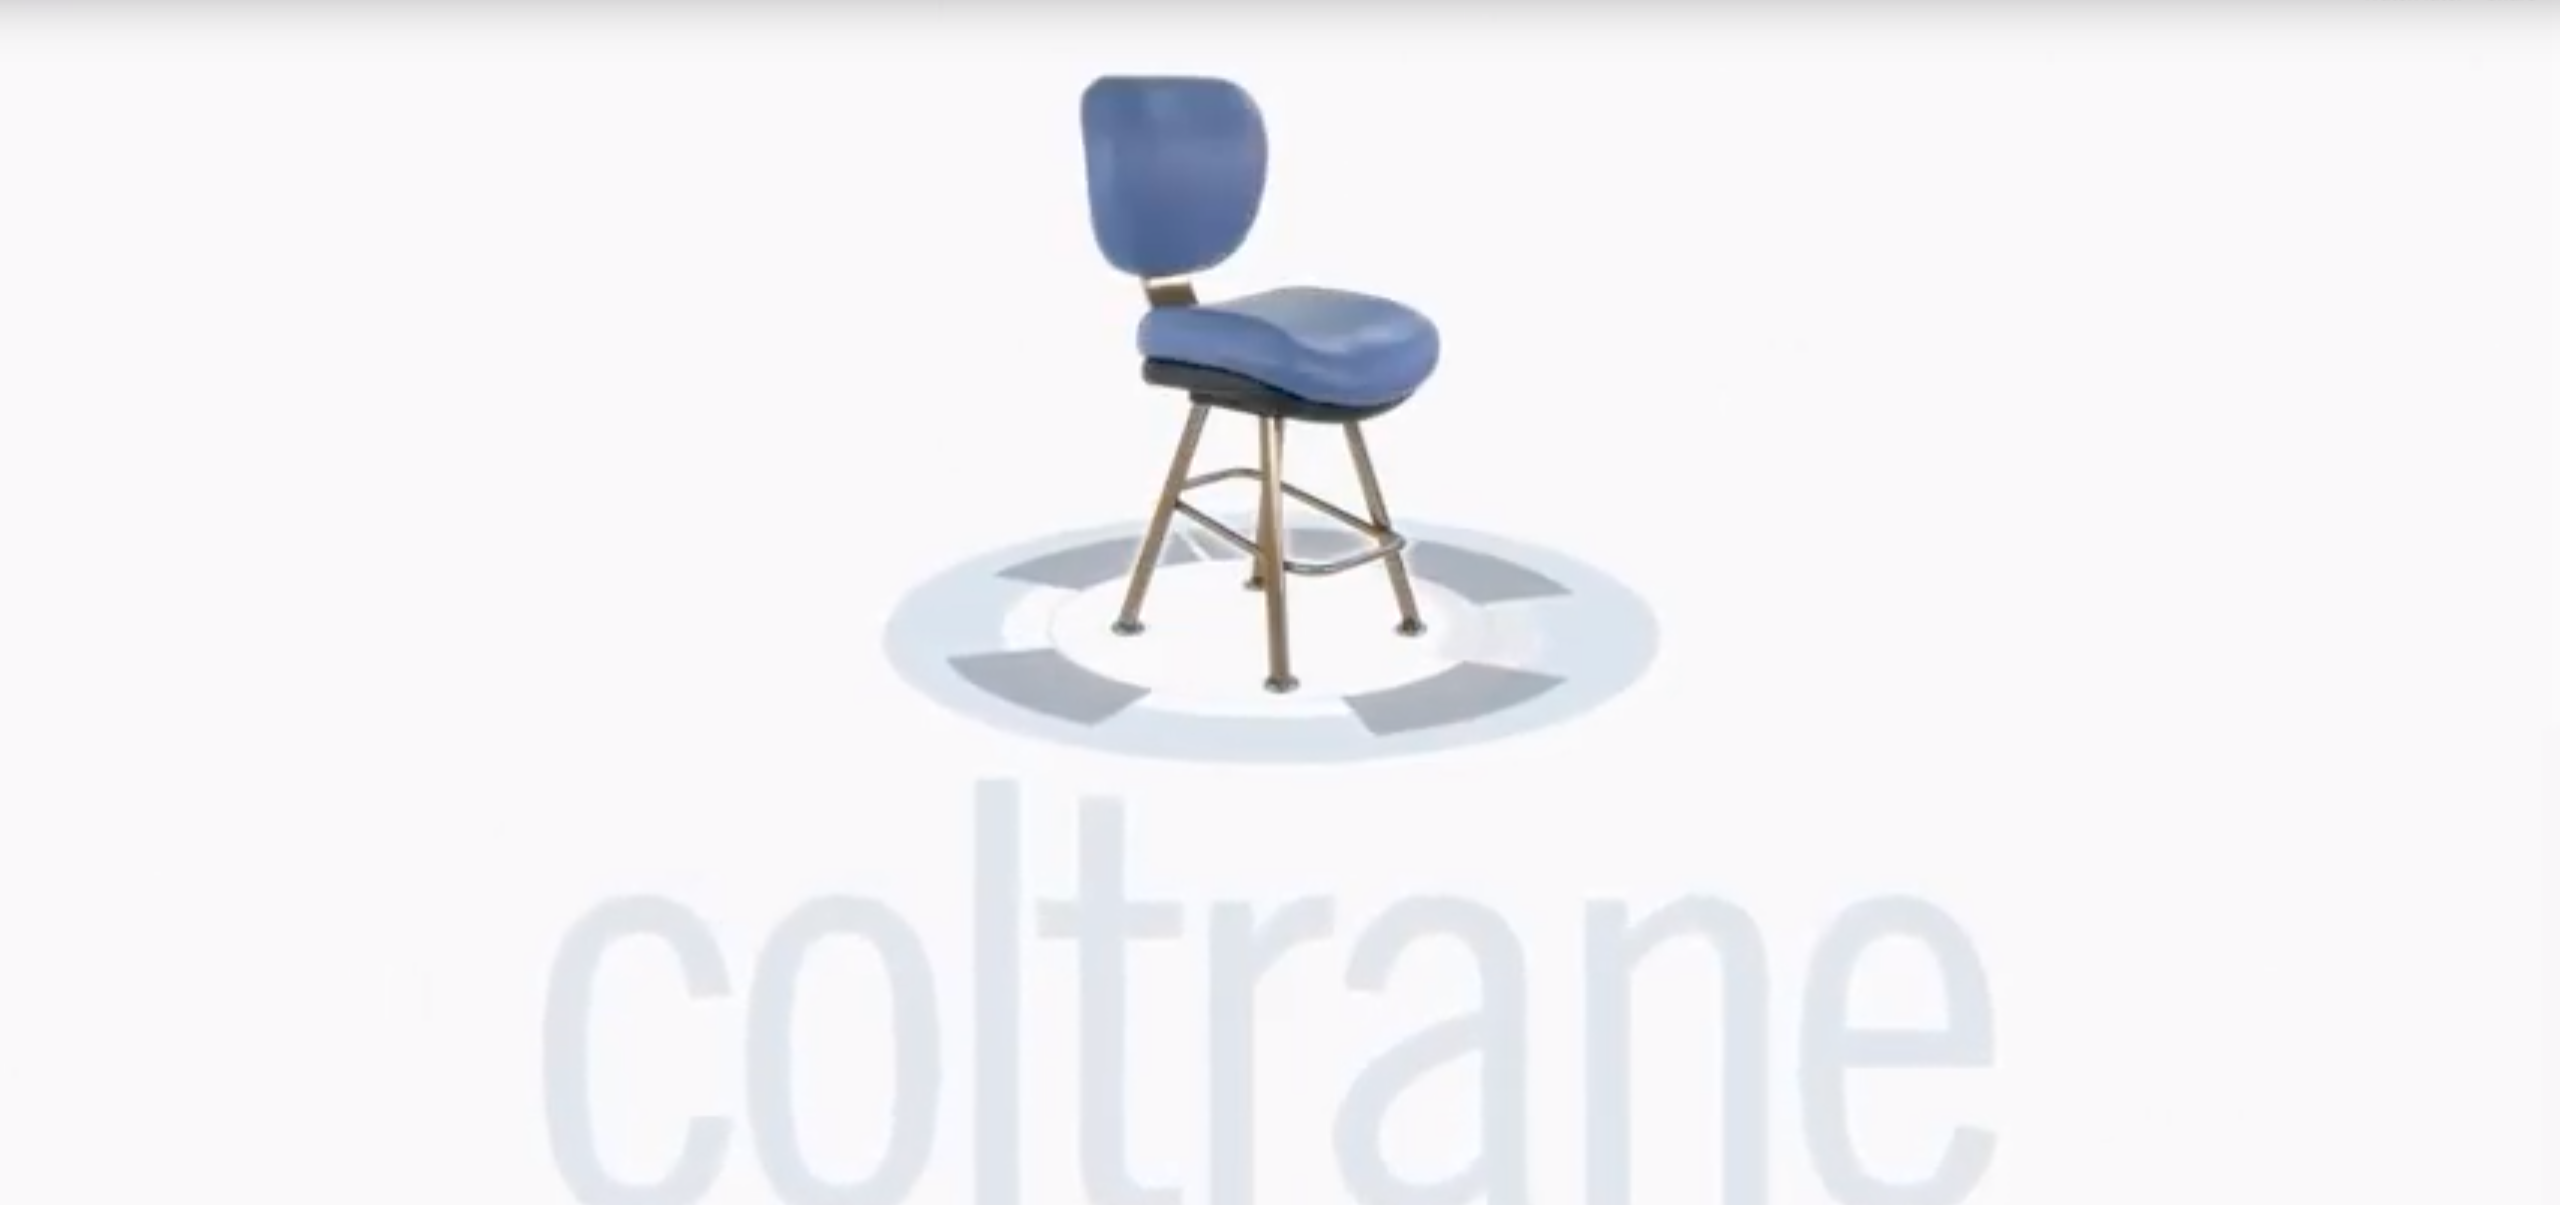 Gasser Chair Introduces the Coltrane